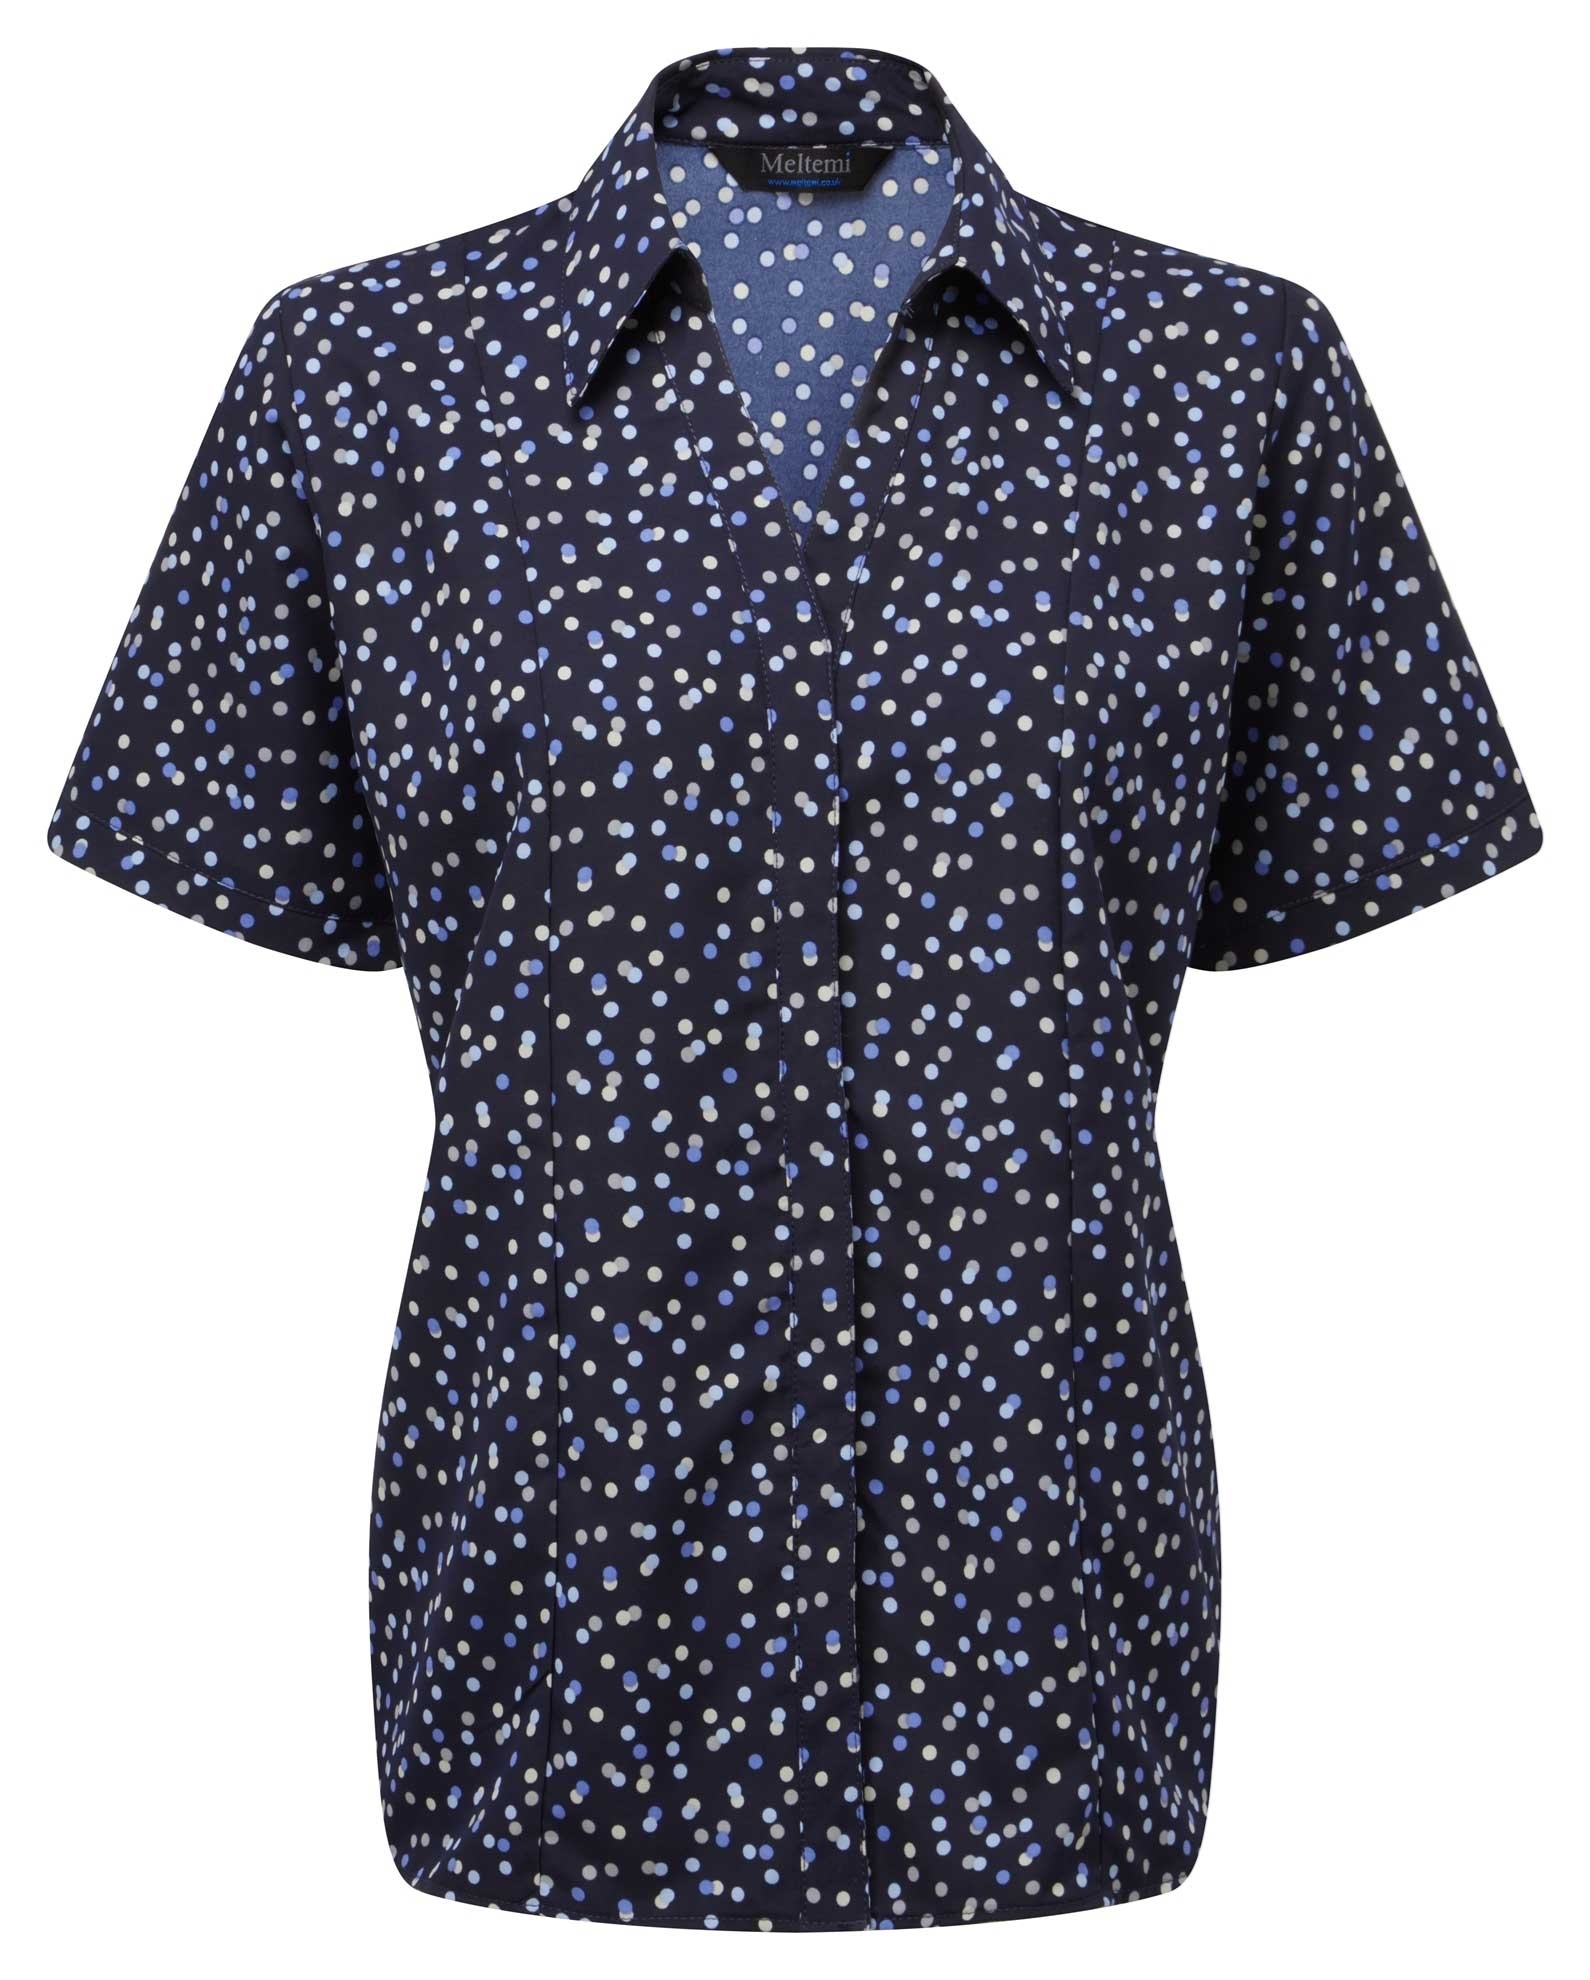 Picture of Semi-Fitted CoolWeave Blouse - Navy/Lavender/Grey Darcey Print